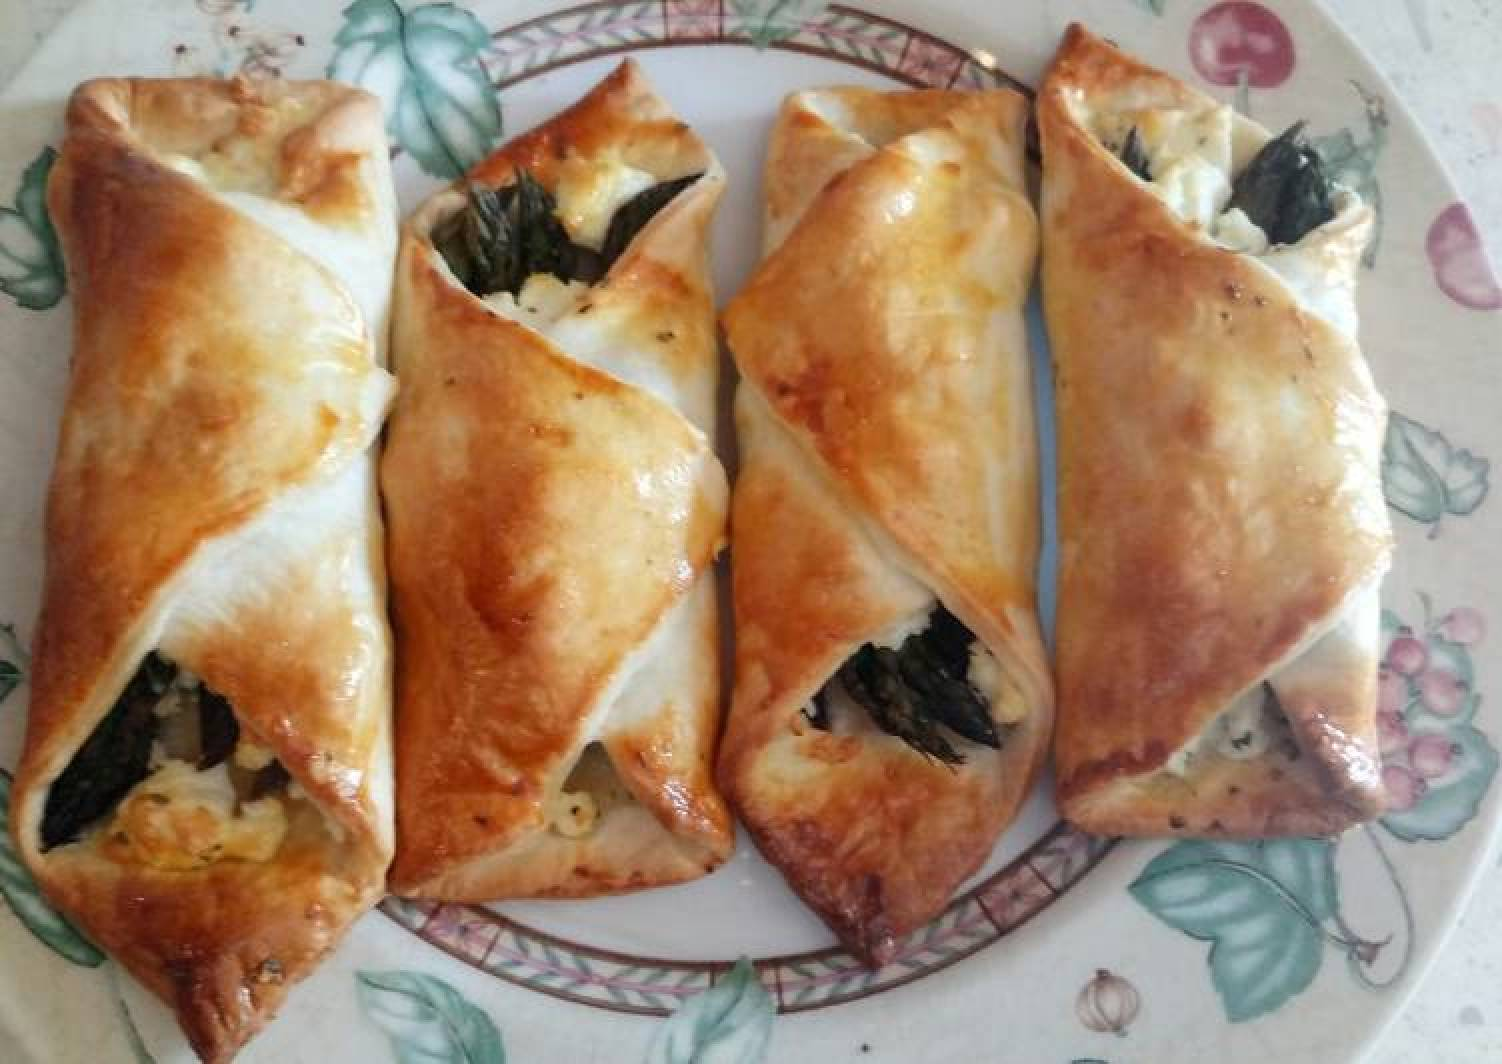 Feta and asparagus pastry wraps